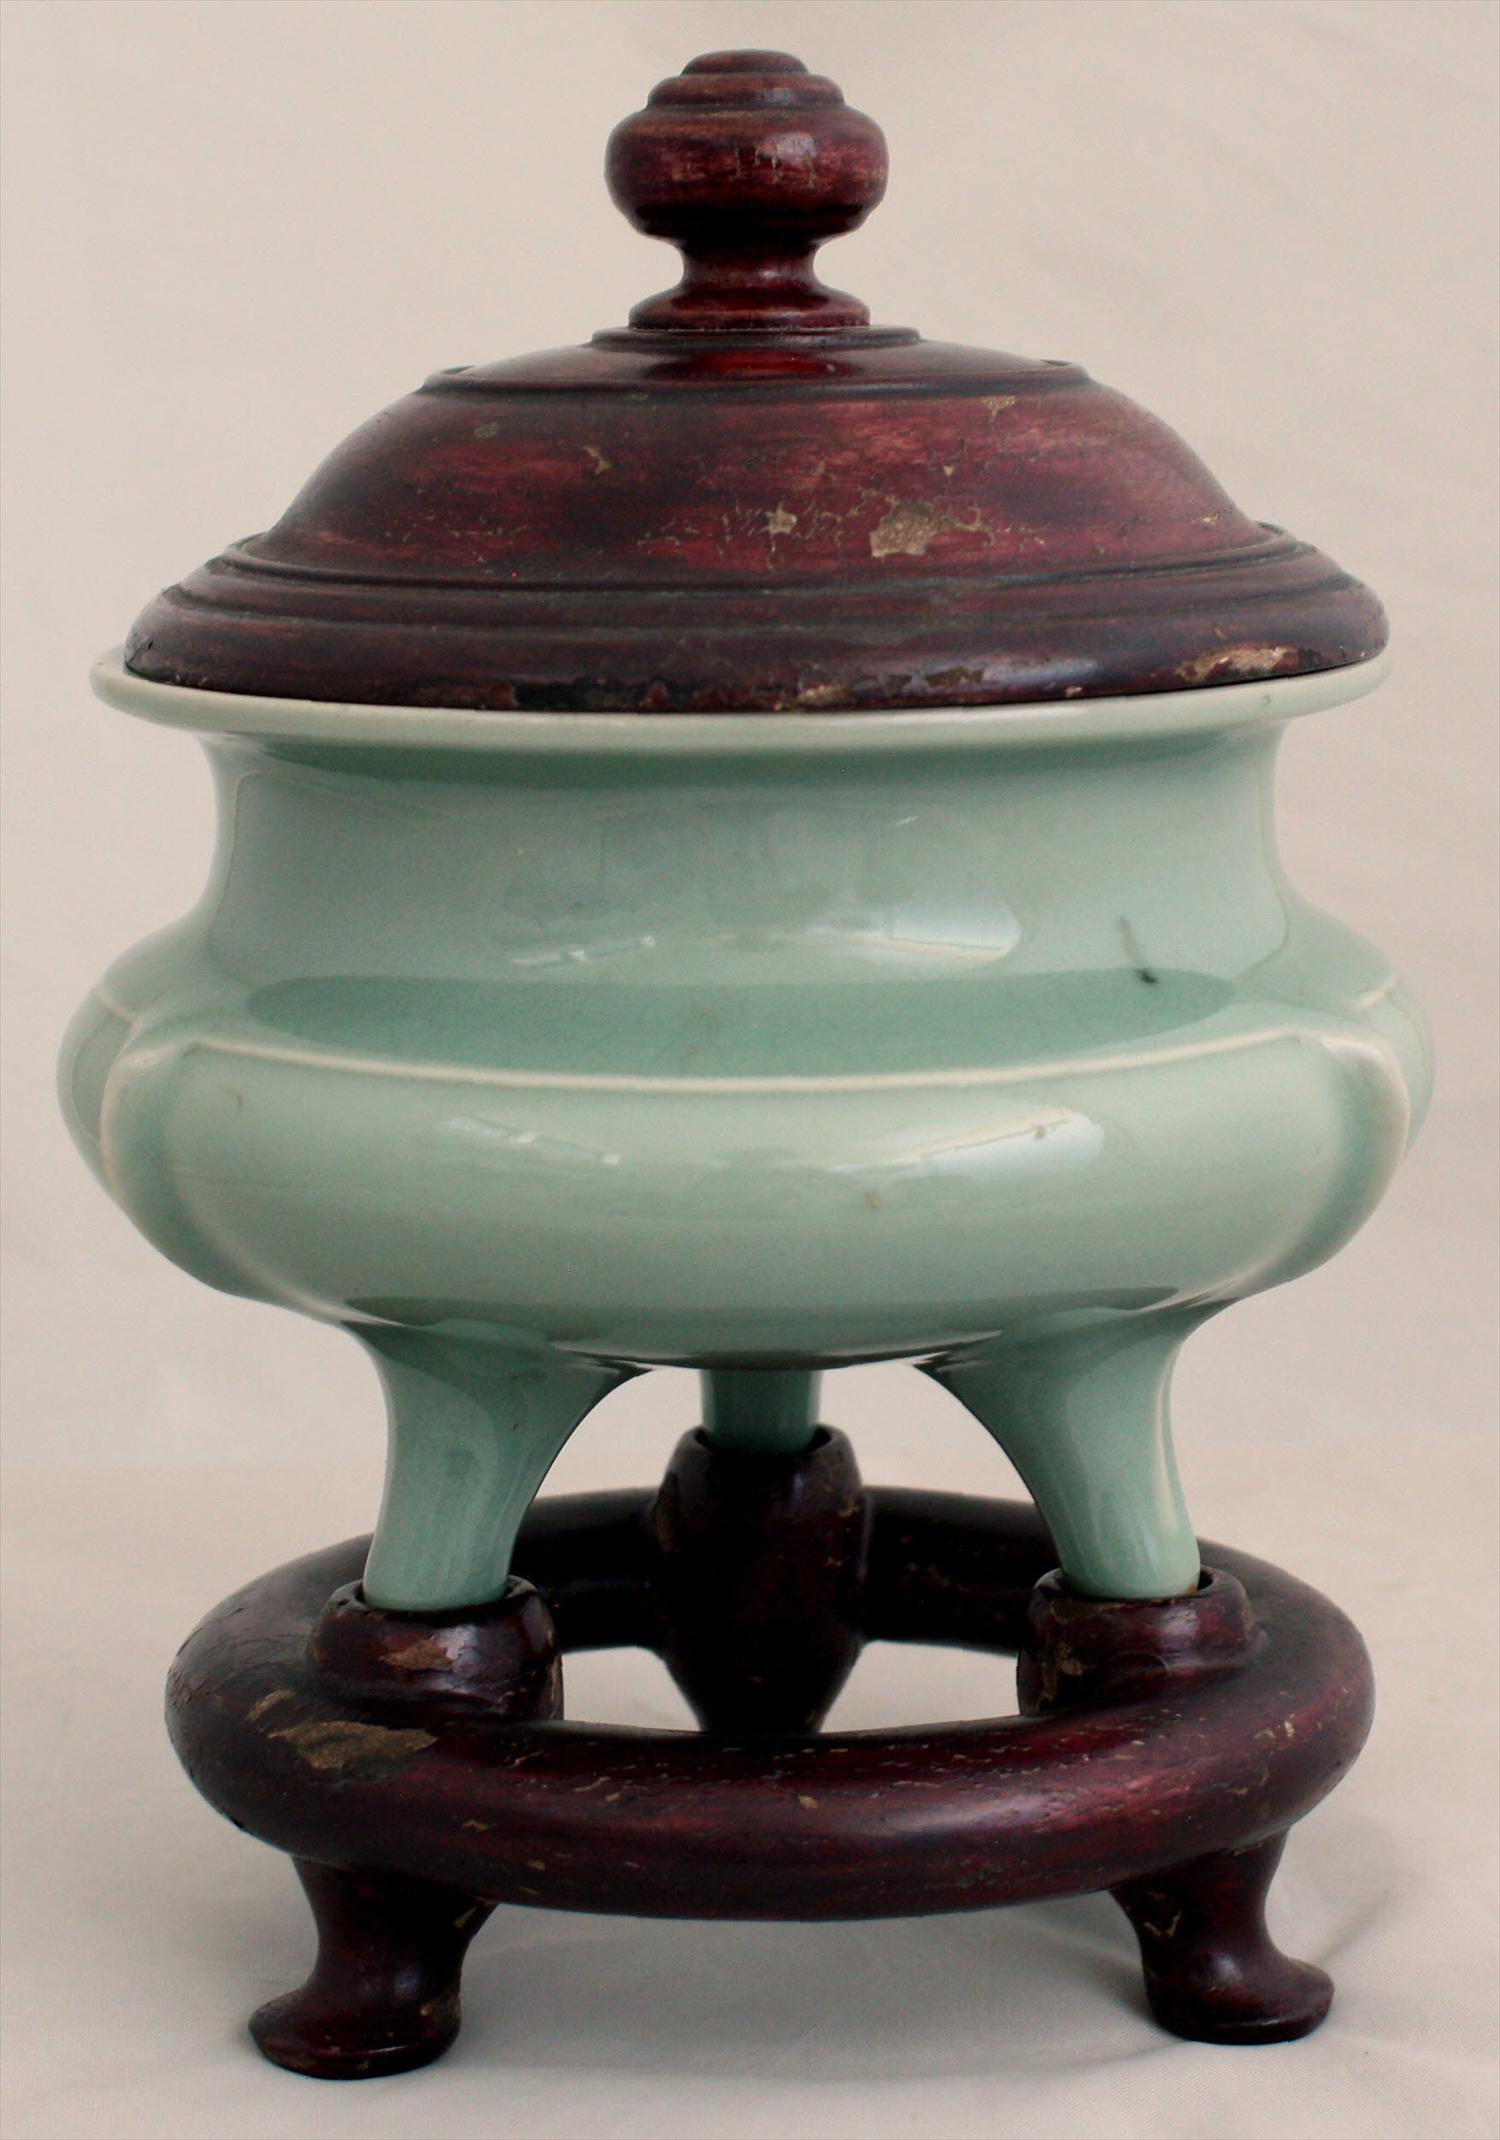 Chinese Southern Song Longquan Celadon Tripod Censer 13th Century